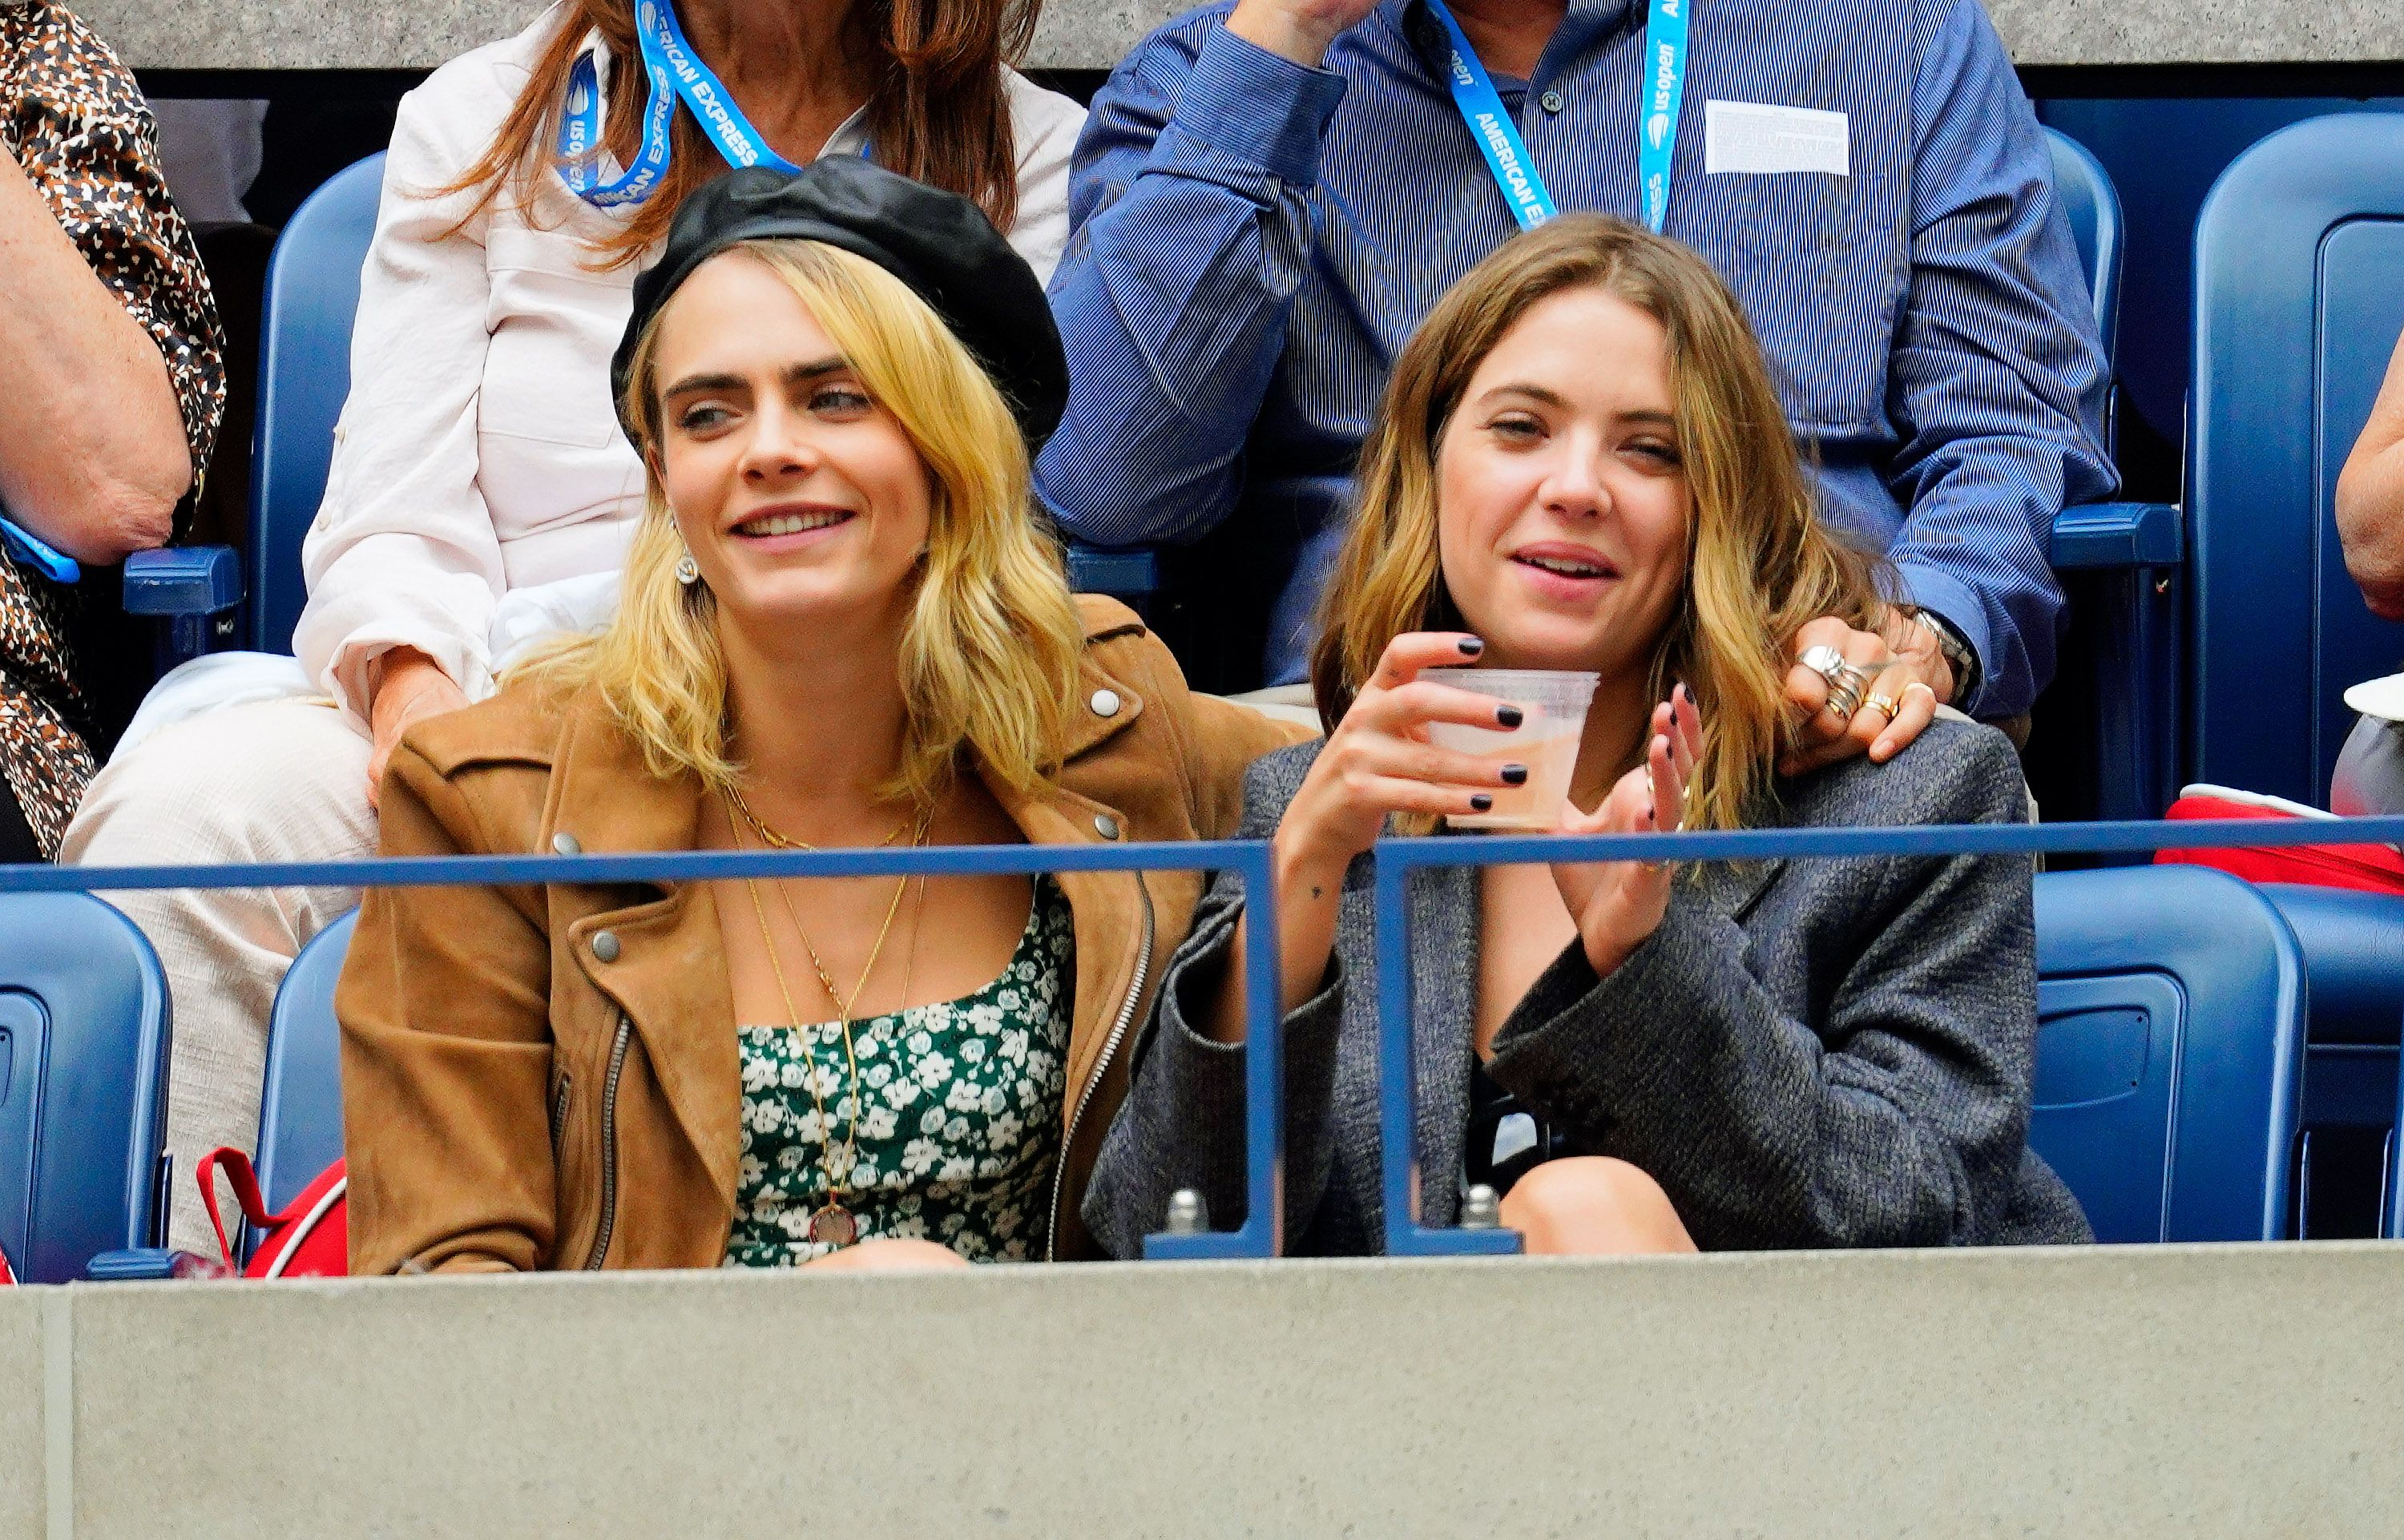 Ashley Benson and Cara Delevingne Are Really Touchy-Feely With Each Other In Public